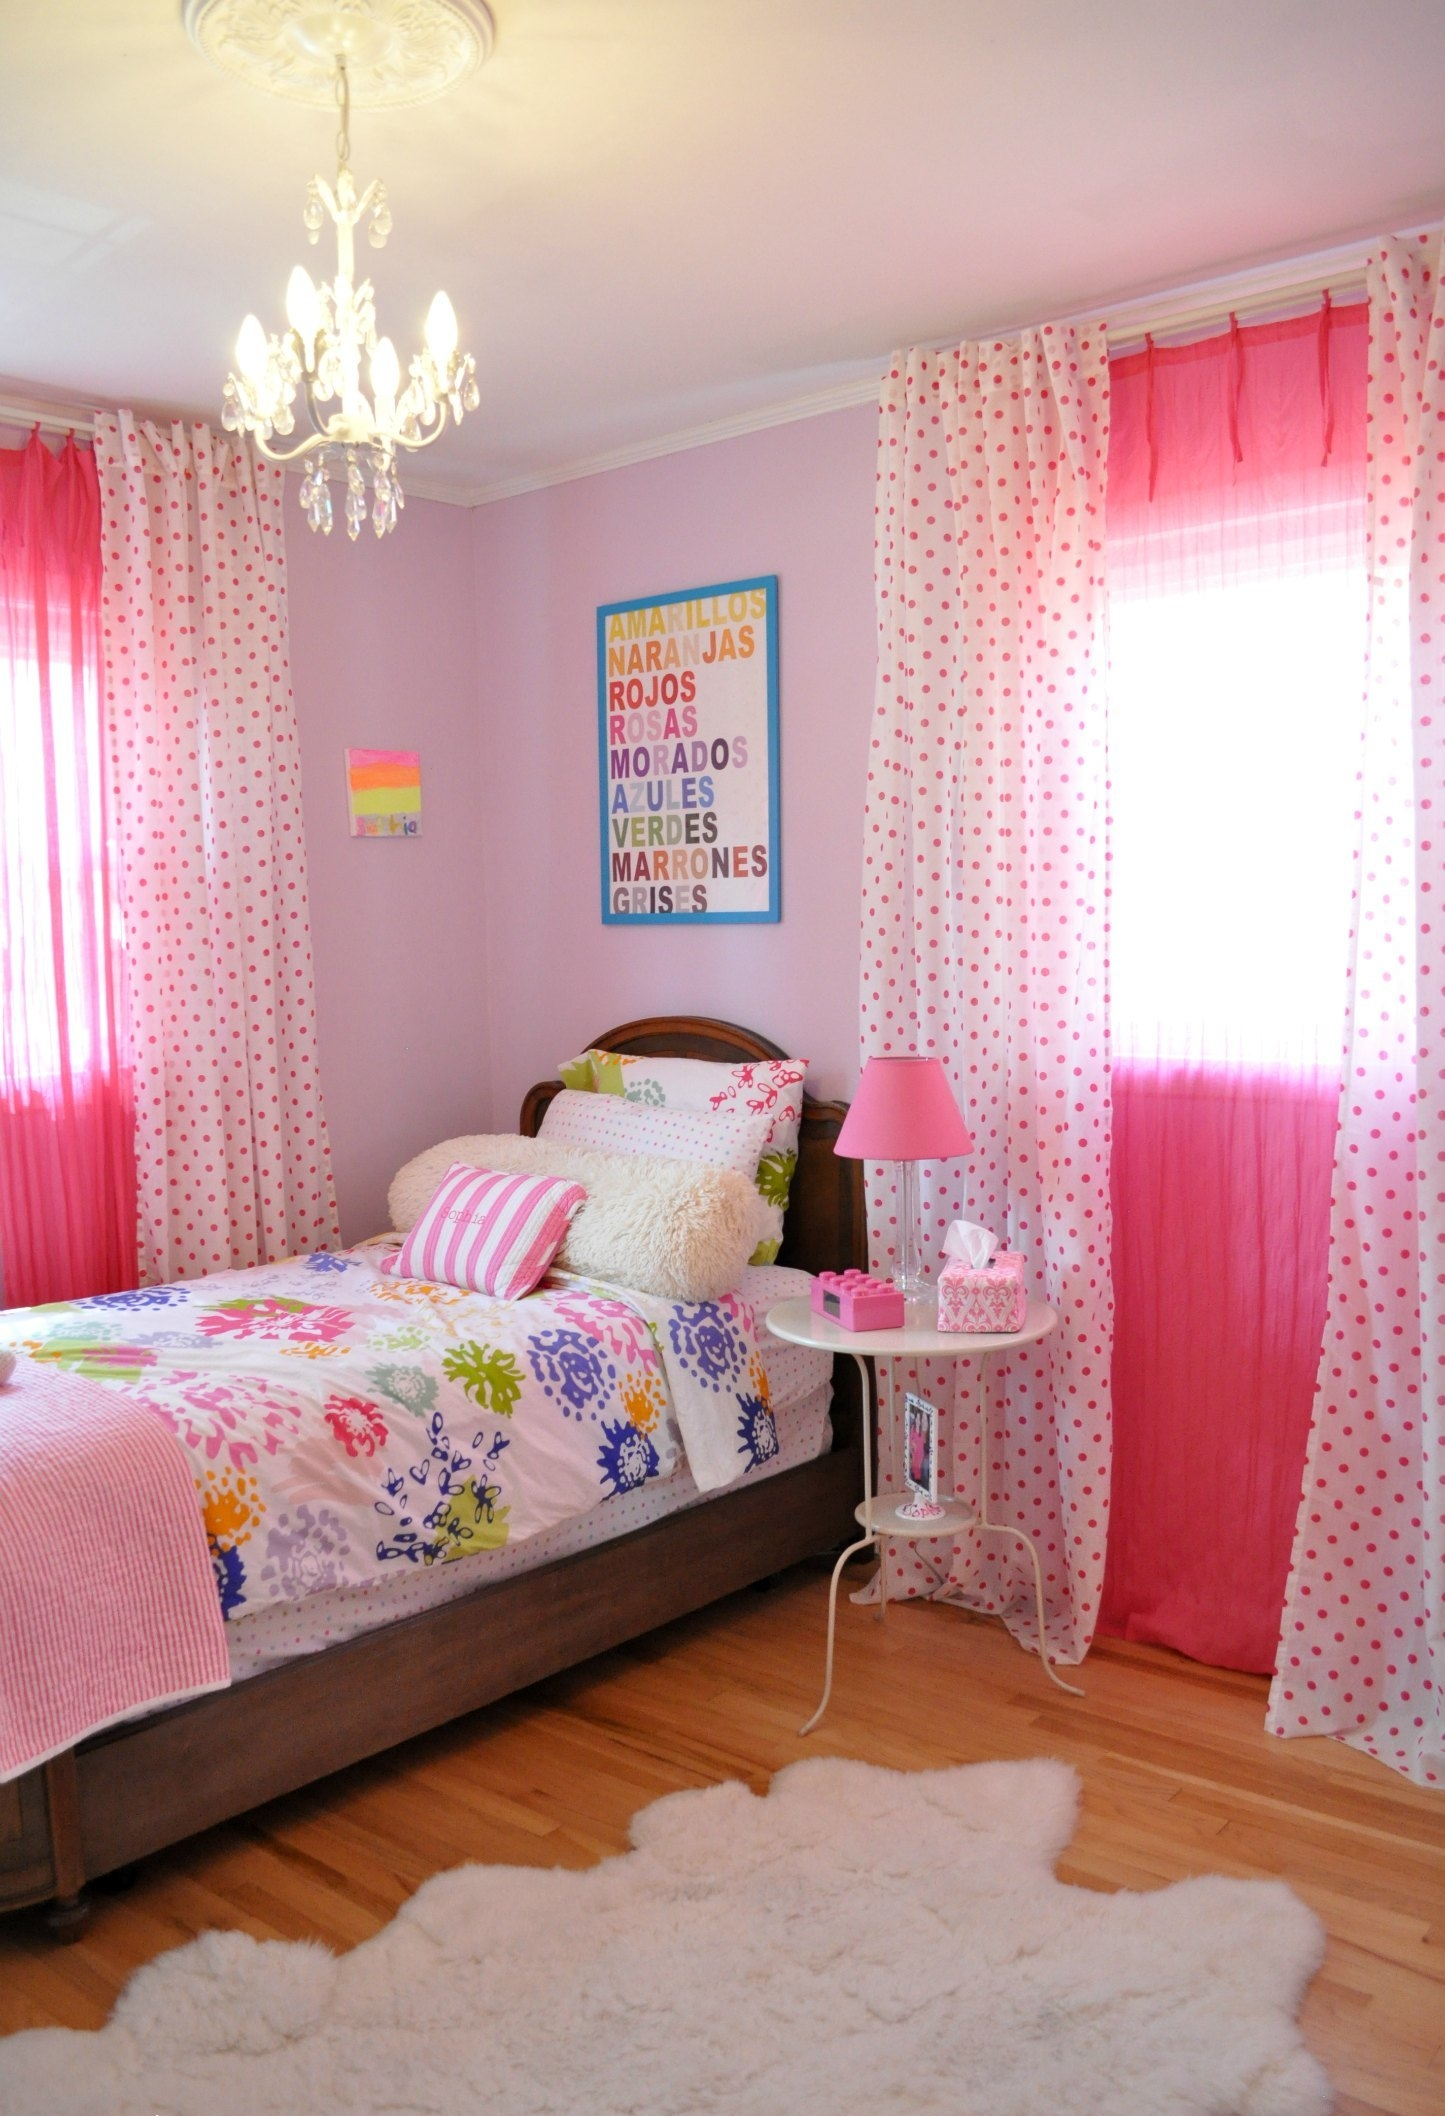 Bedroom Cute Girls Bedroom Decorating Ideas With Fresh Colors With Small Chandelier Table Lamps (View 24 of 25)